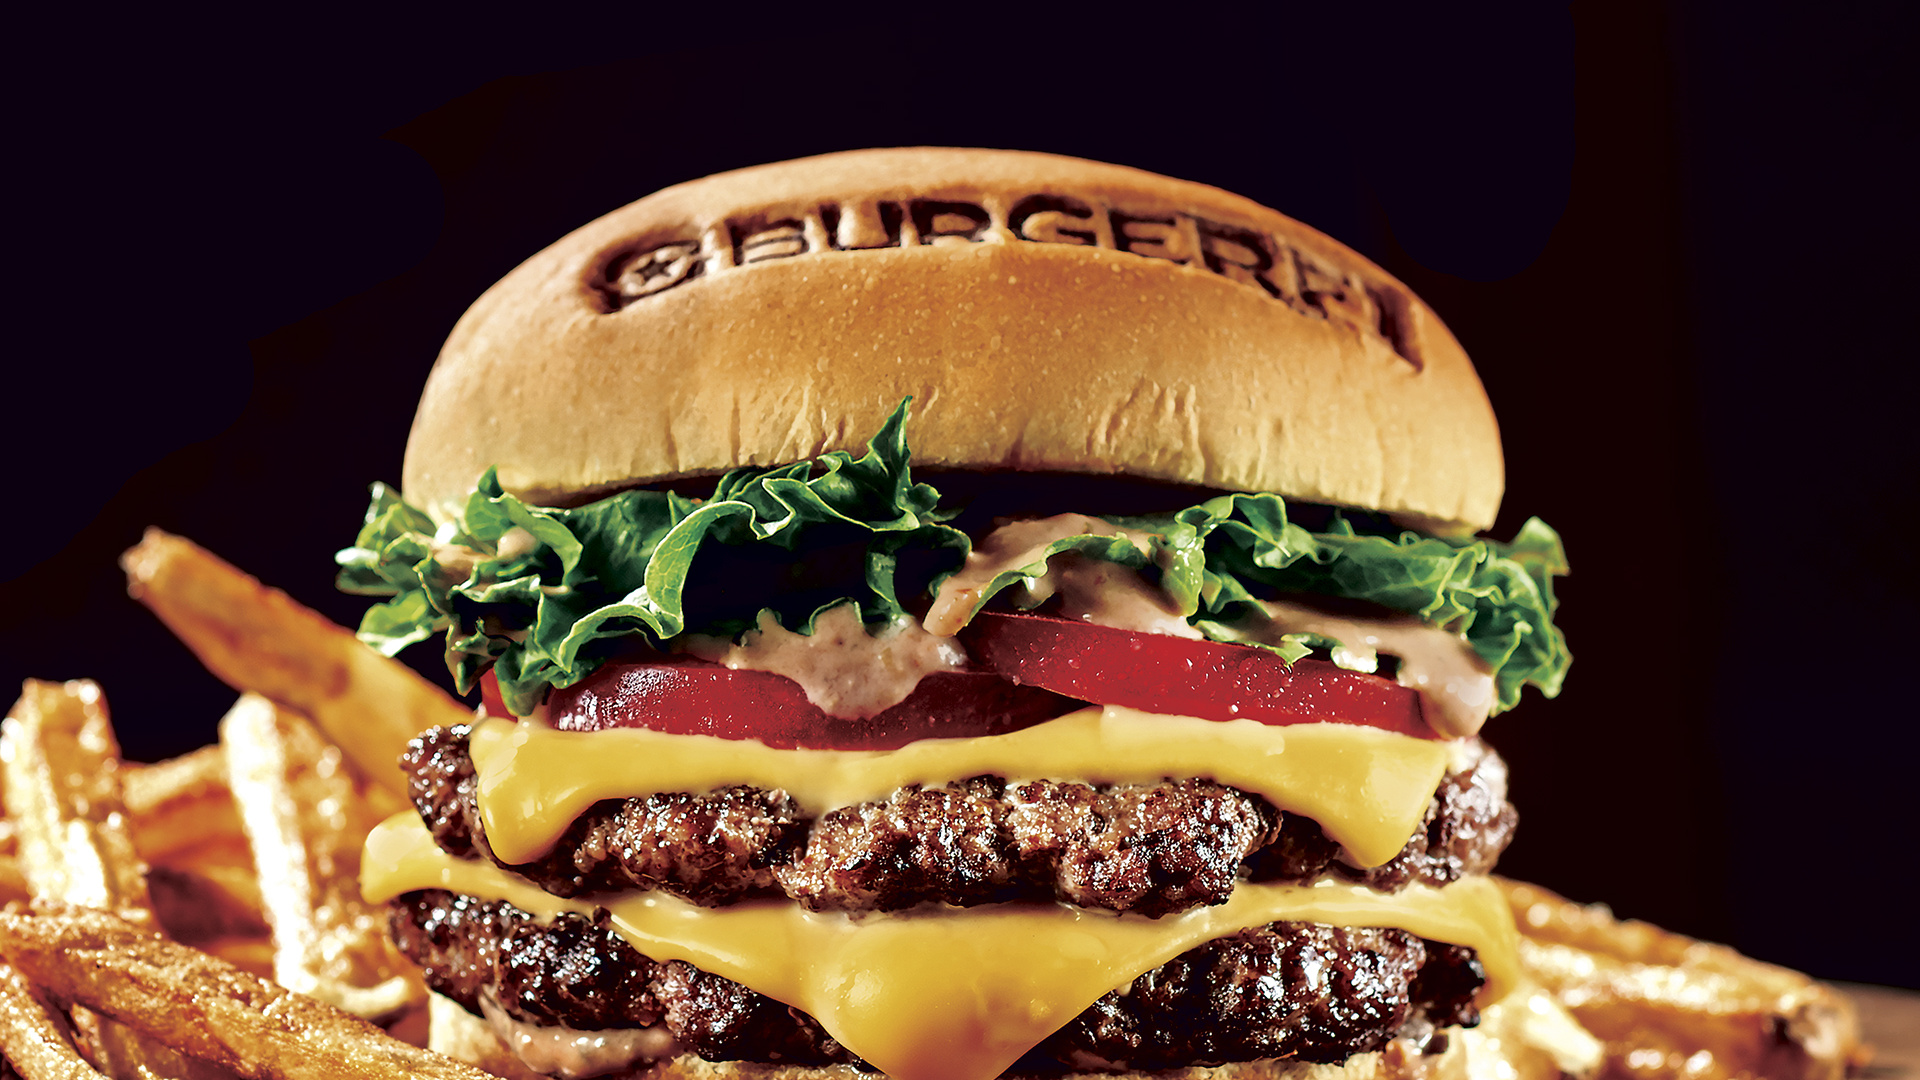 Get a free side at BurgerFi